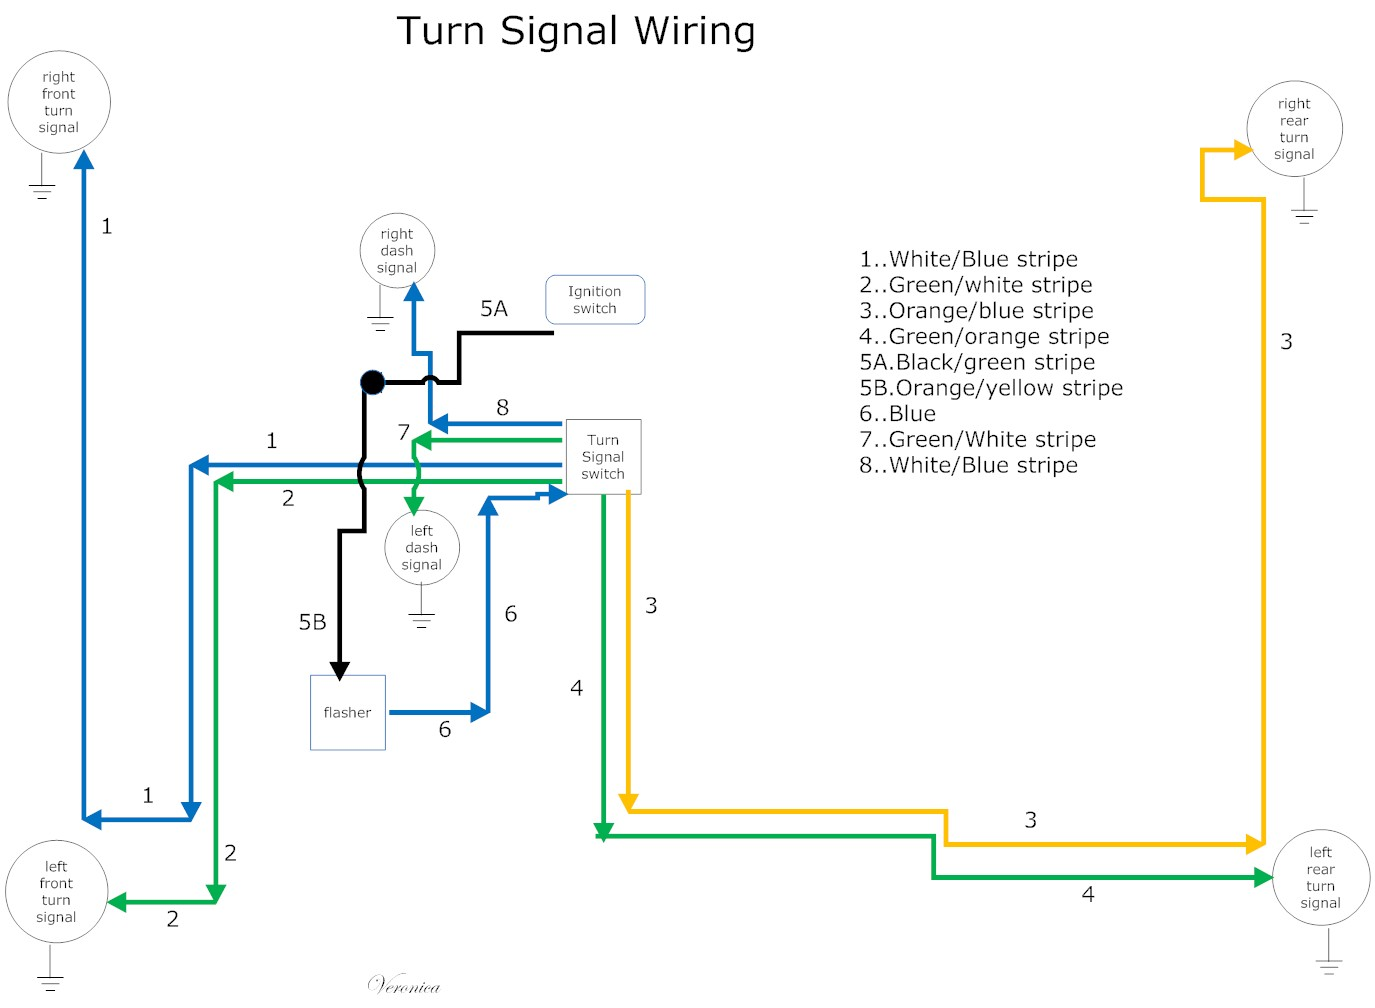 medium resolution of harley davidson turn signal wiring diagram 11 14 tridonicsignage de u2022